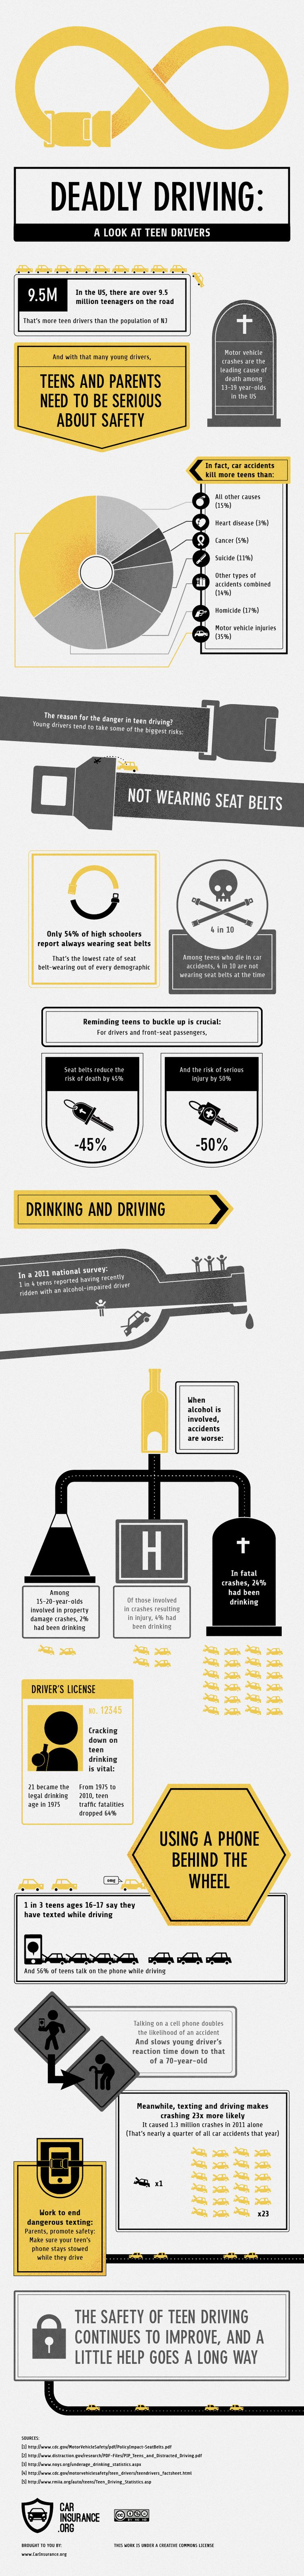 17 best ideas about teen driving school learning to pretty interesting infographic on teen driving safety issues from carinsurance org